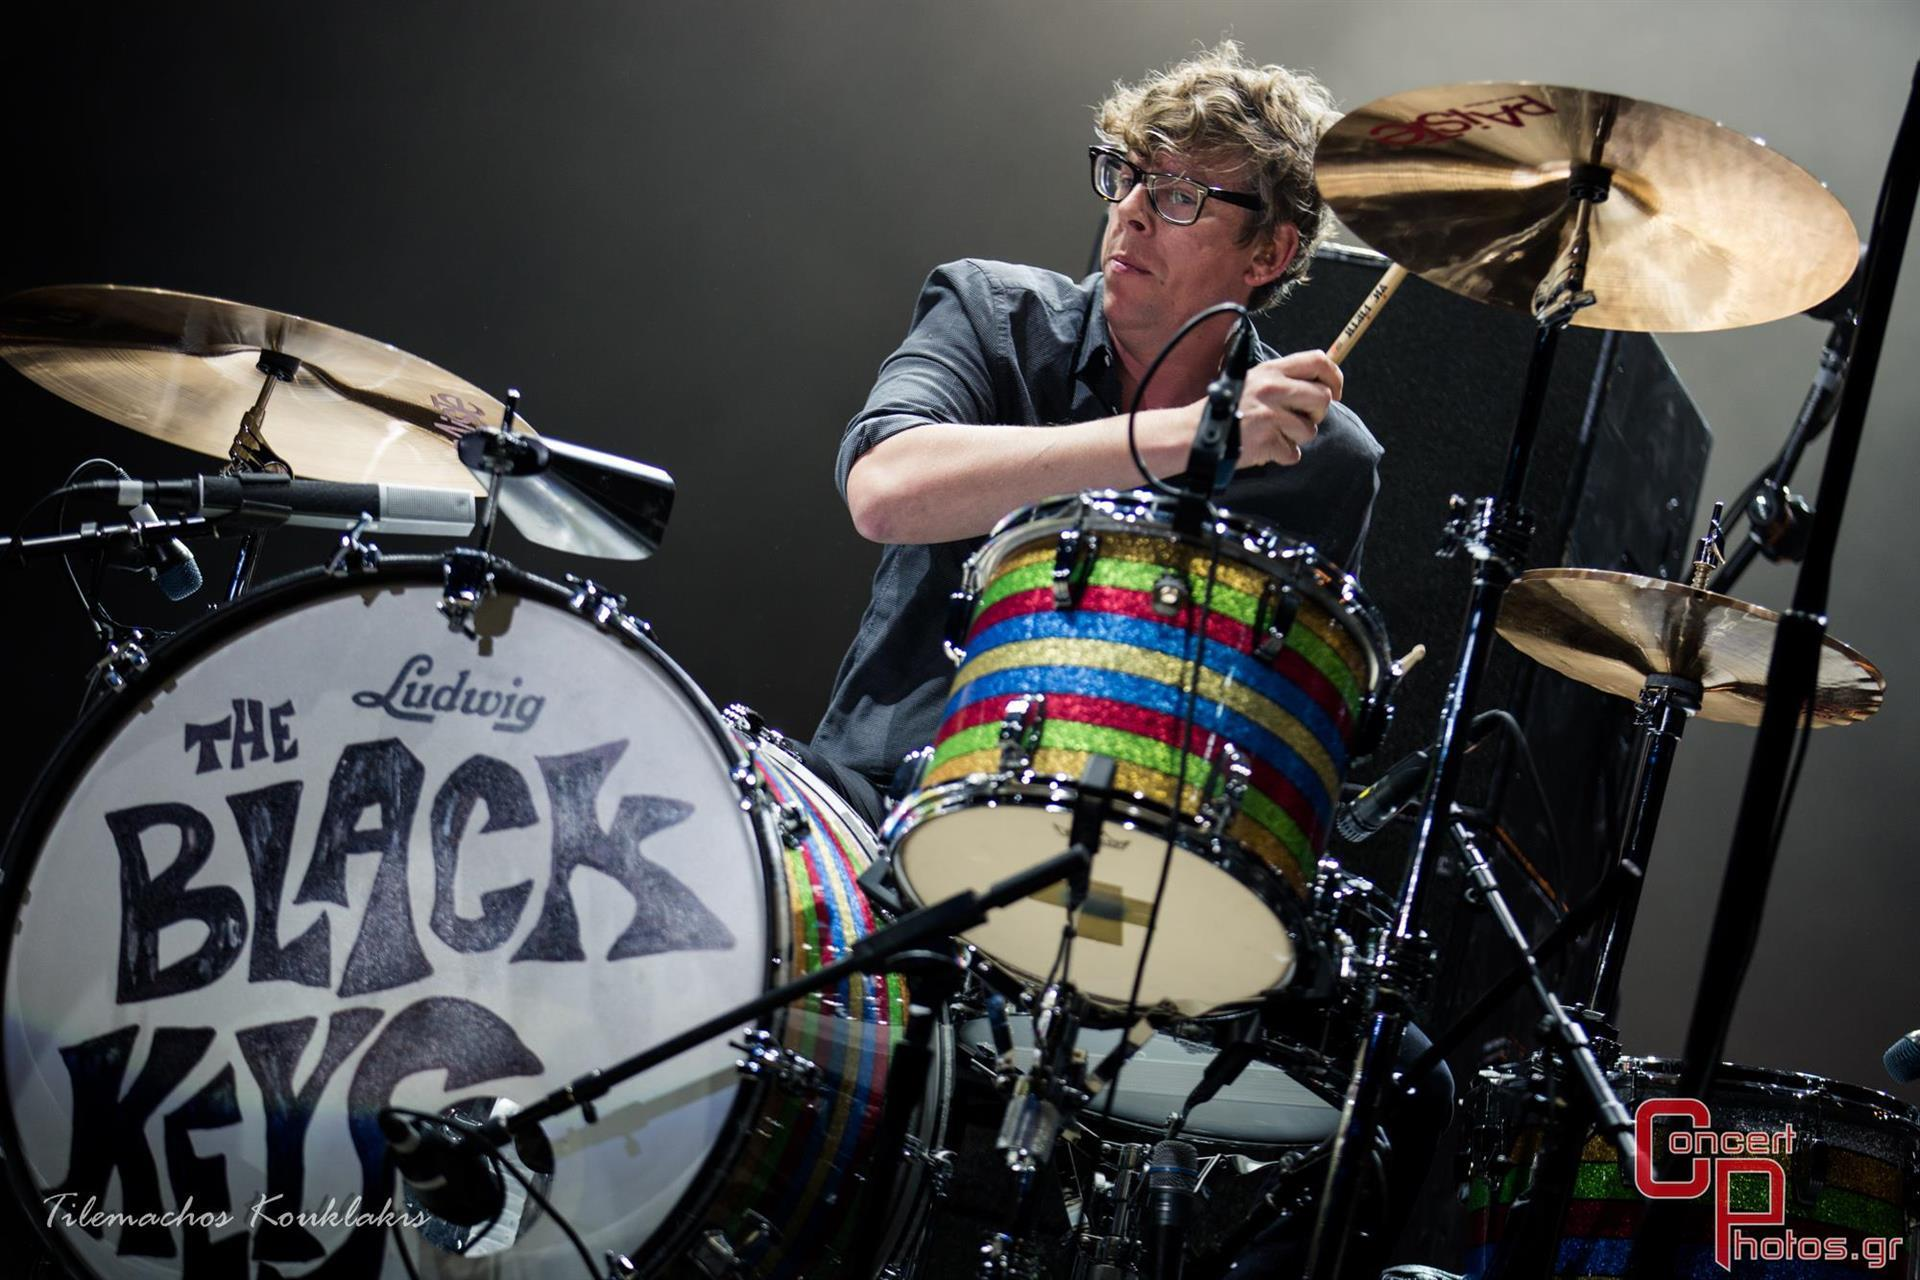 Rockwave 2015 - Black Keys-Black Angels-1000mods-The Big Nose Attack-Puta Volcano-Rockwave 2015 - Black Keys-Black Angels-1000mods photographer:  - 01_Black Keys _02